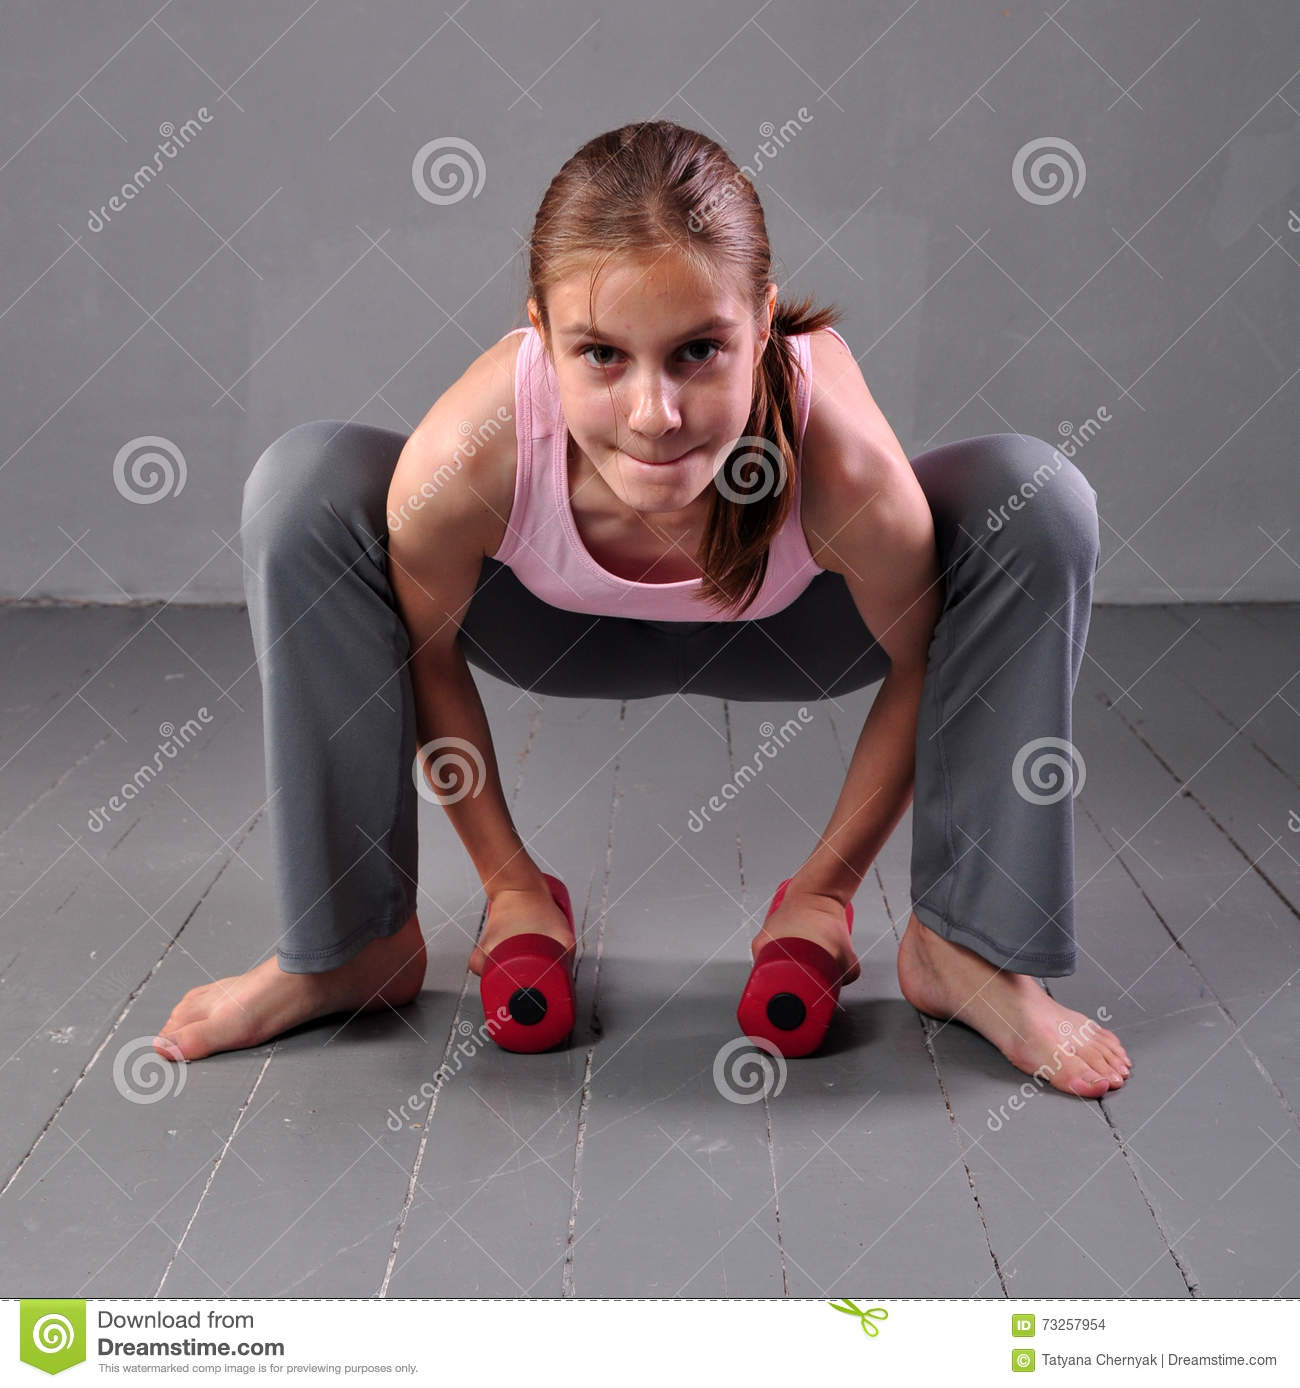 Teenager girl doing exercises with dumbbells to develop with dumbbells  muscles on grey background. Full